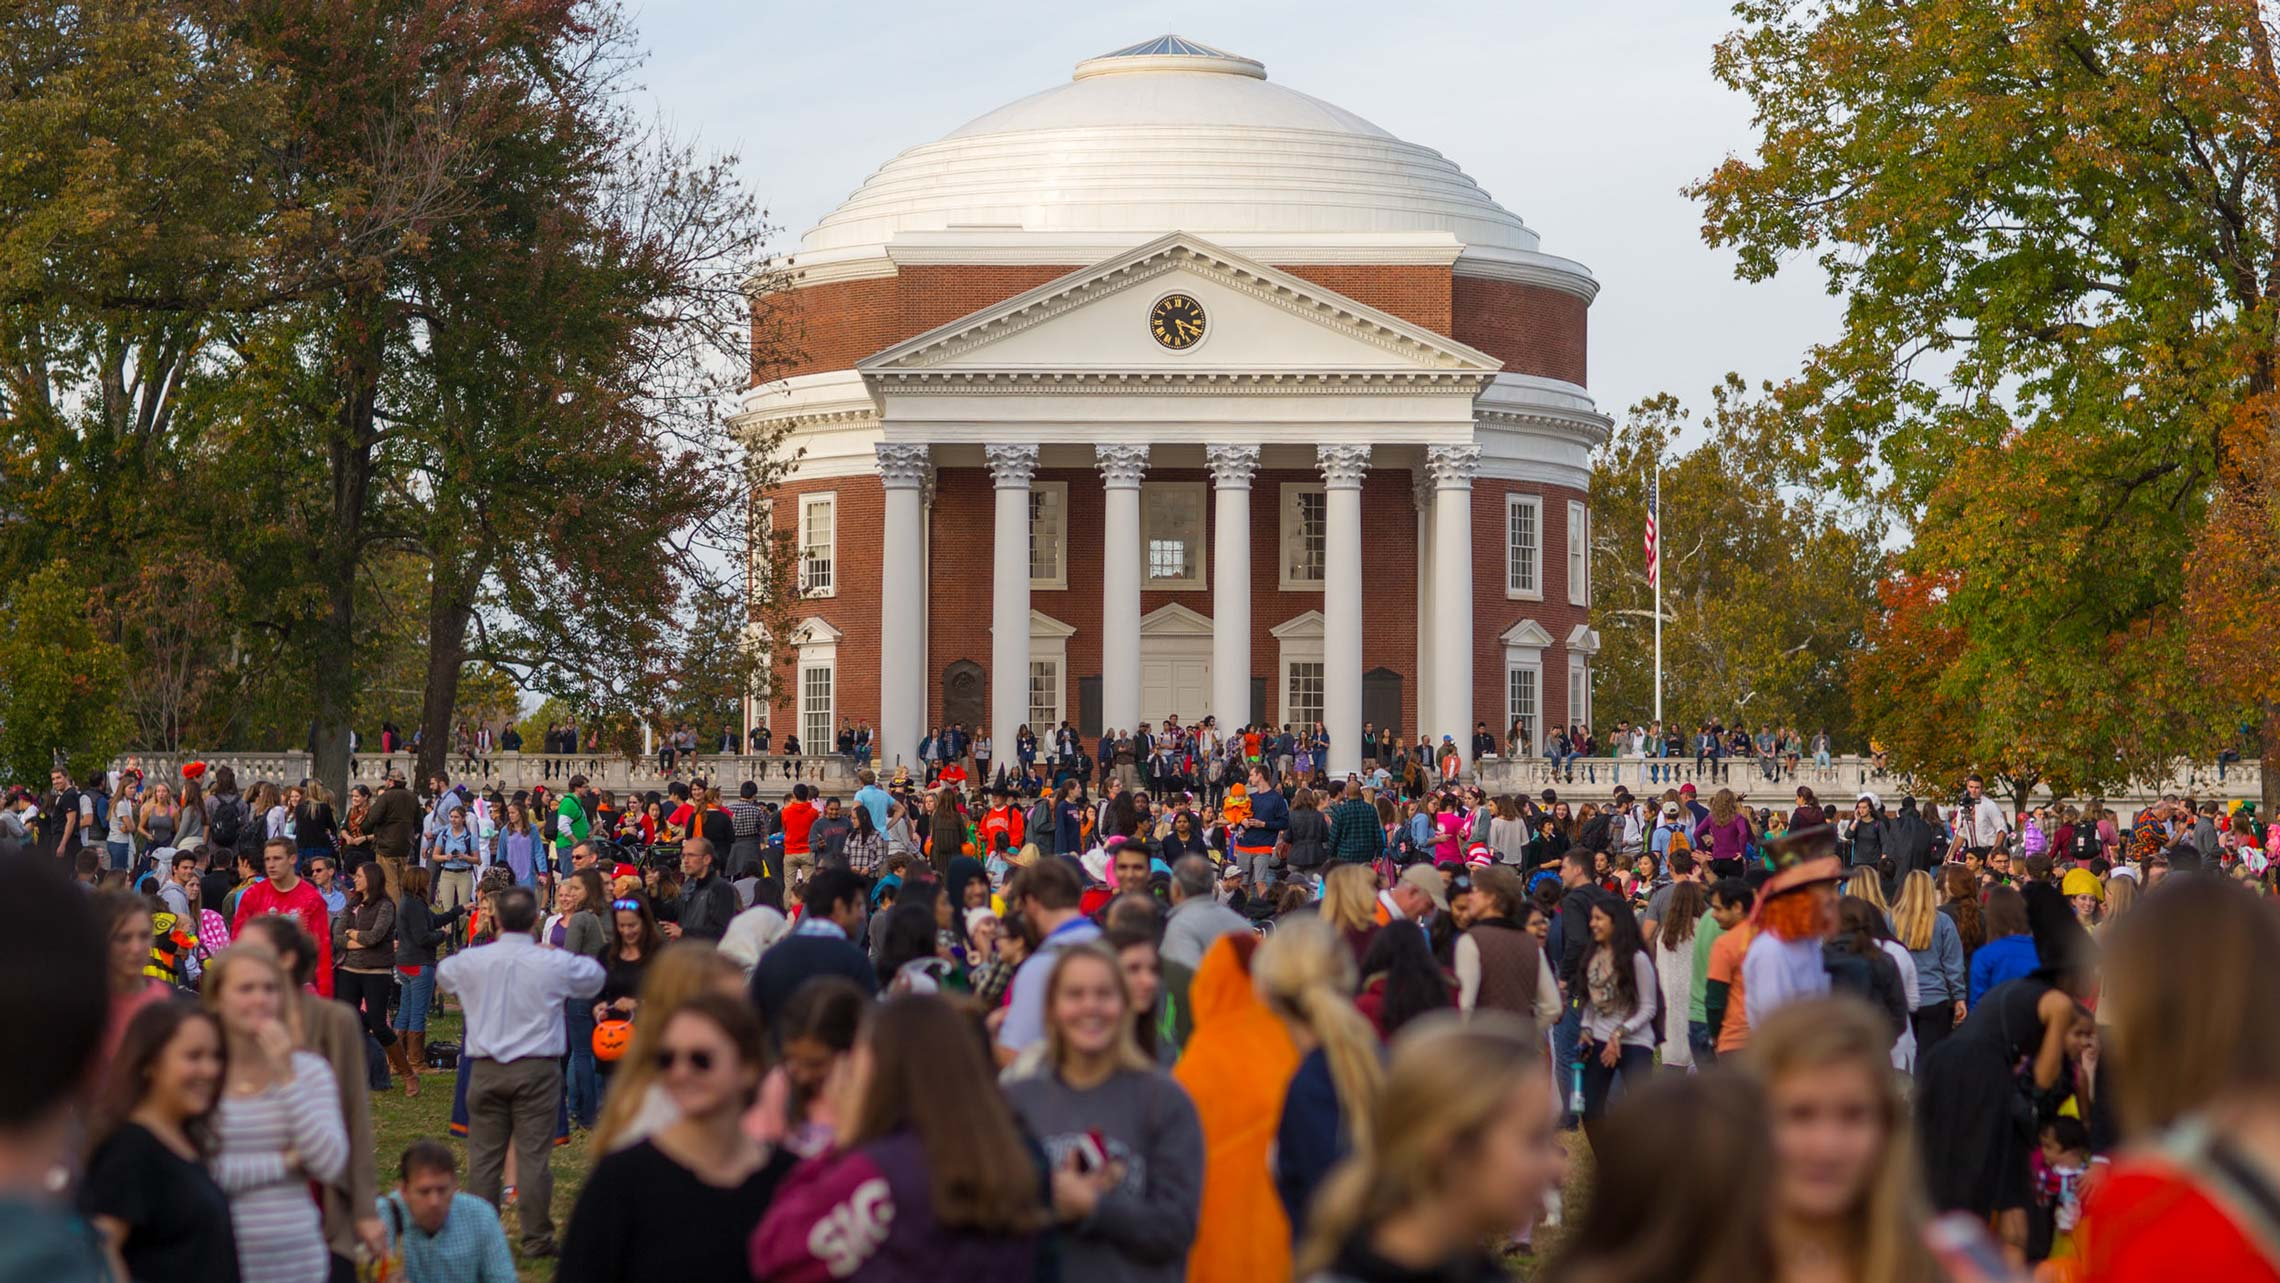 A large crowd of people in costumes in front of the UVA Rotunda